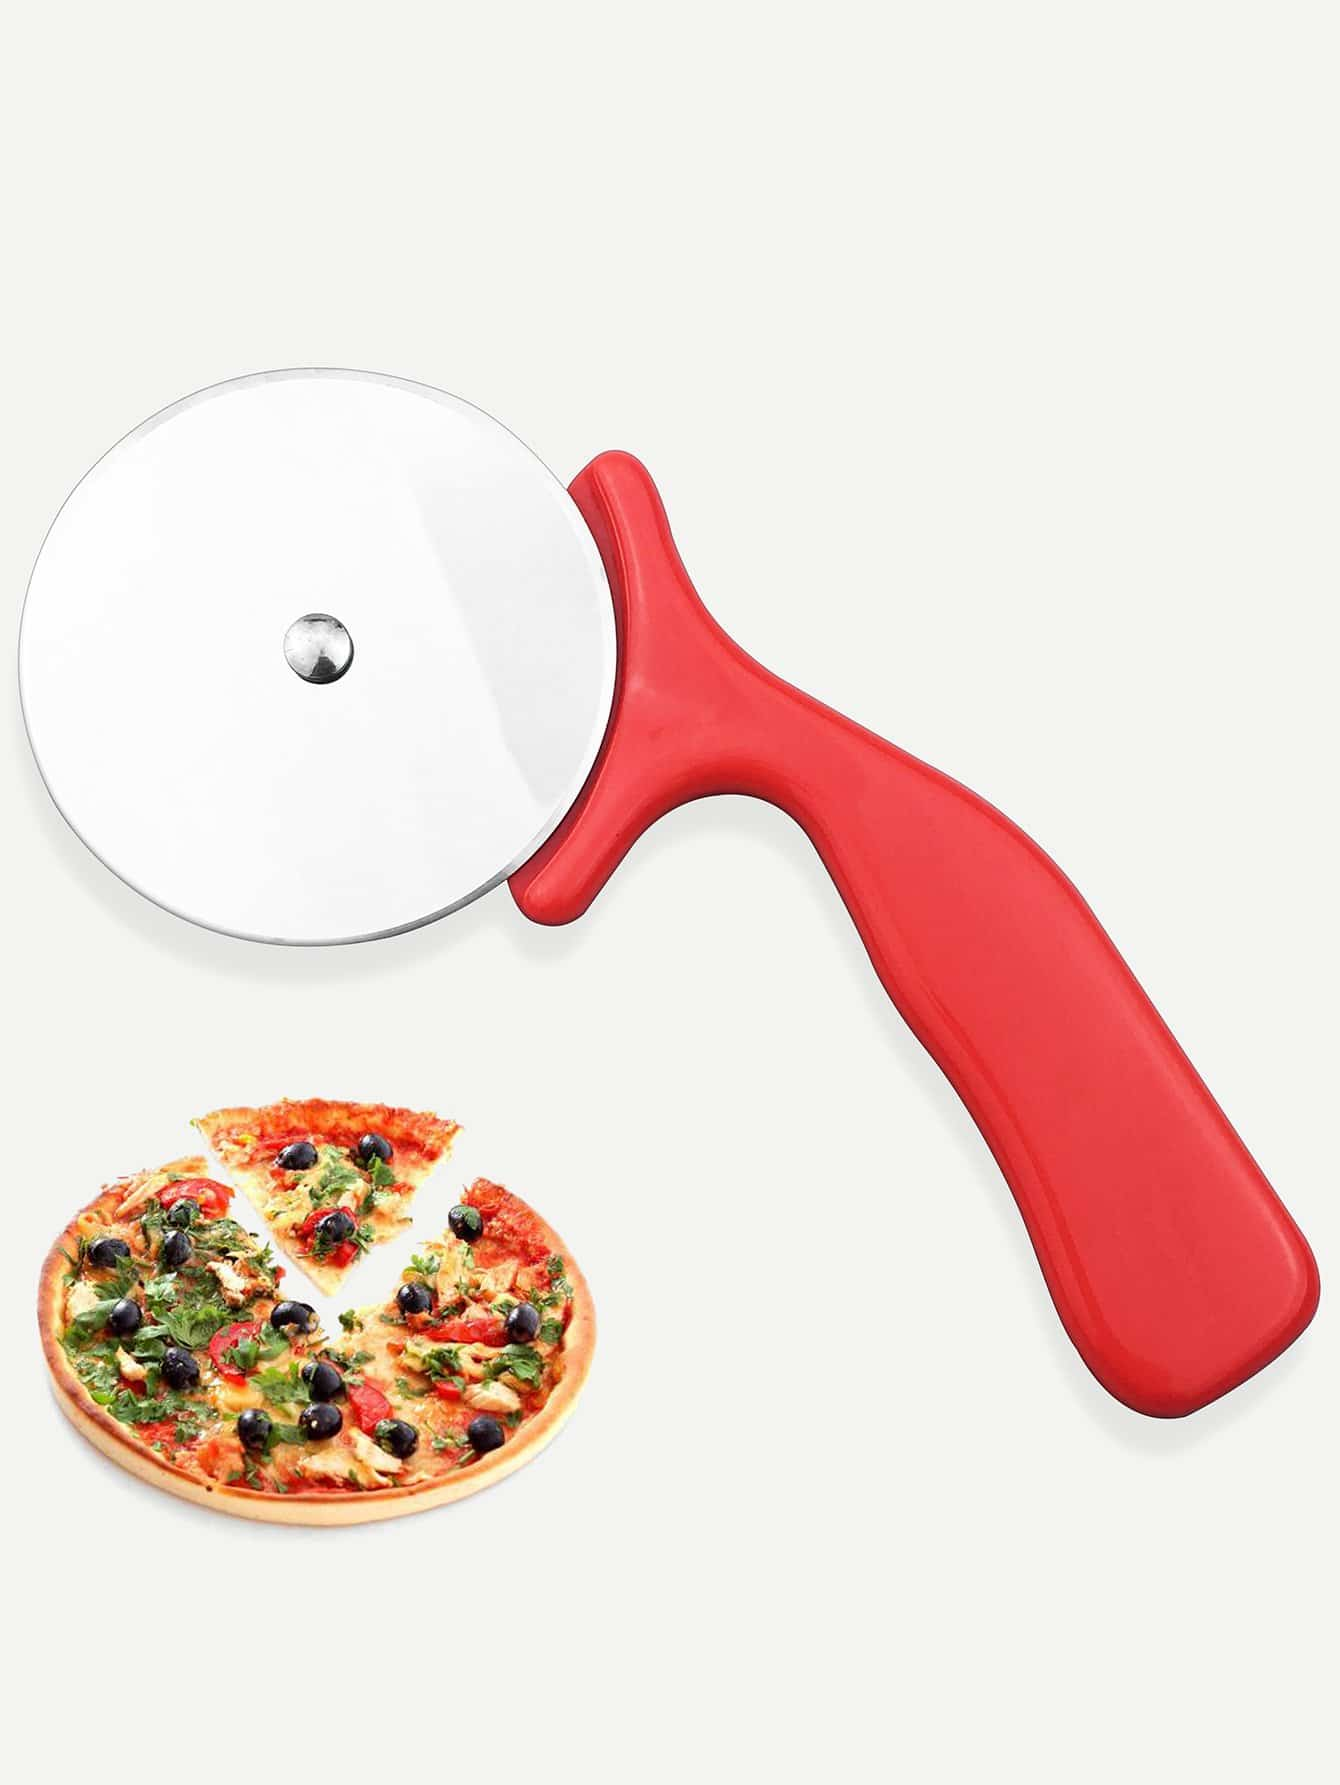 Stainless Steel Pizza Cutter stainless steel bicycle pizza cutter slicer wheel kitchen tool